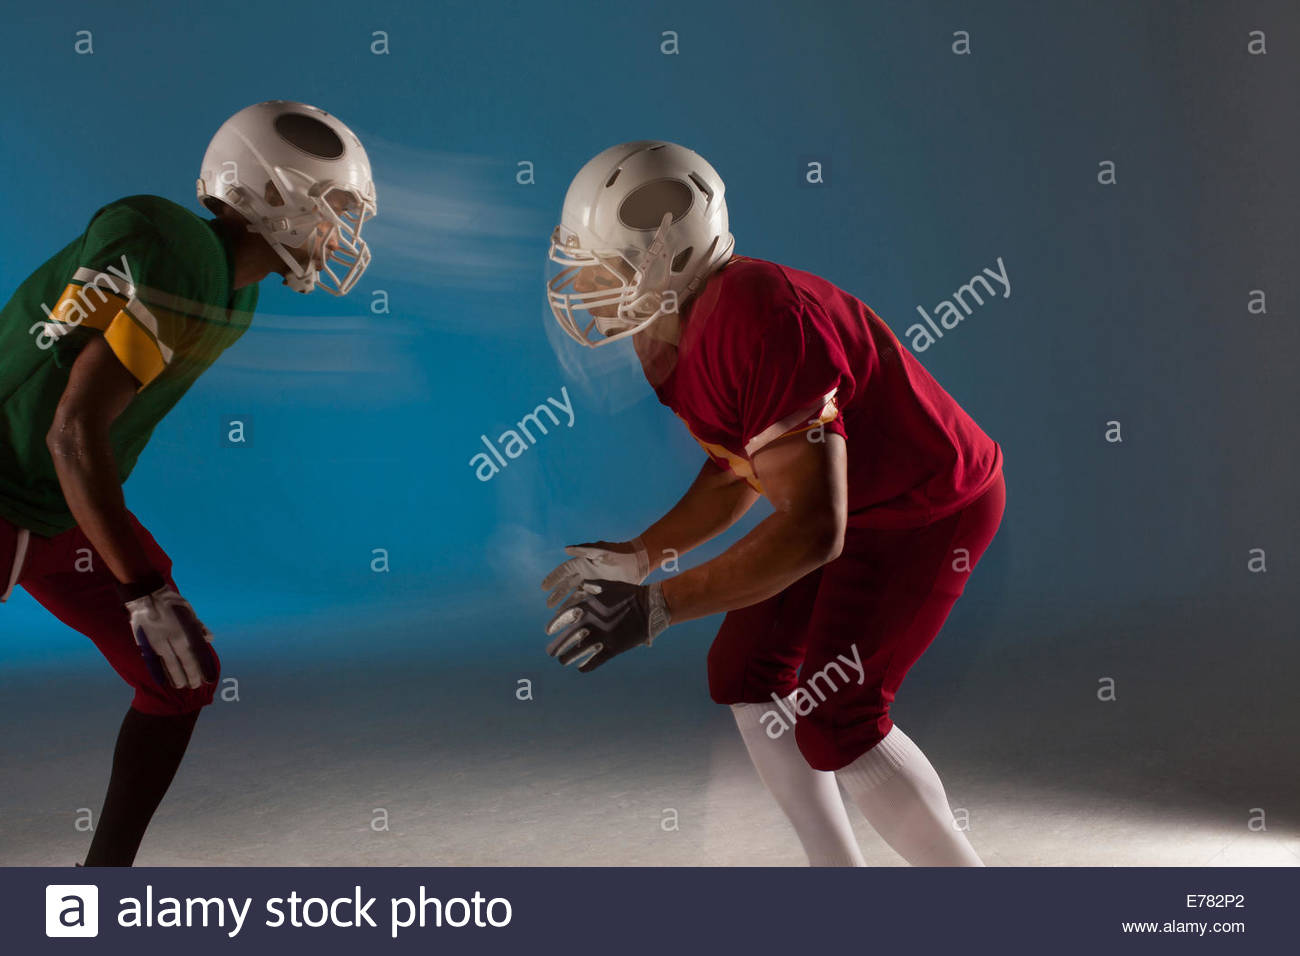 Blurred view of football players facing each other Stock Photo